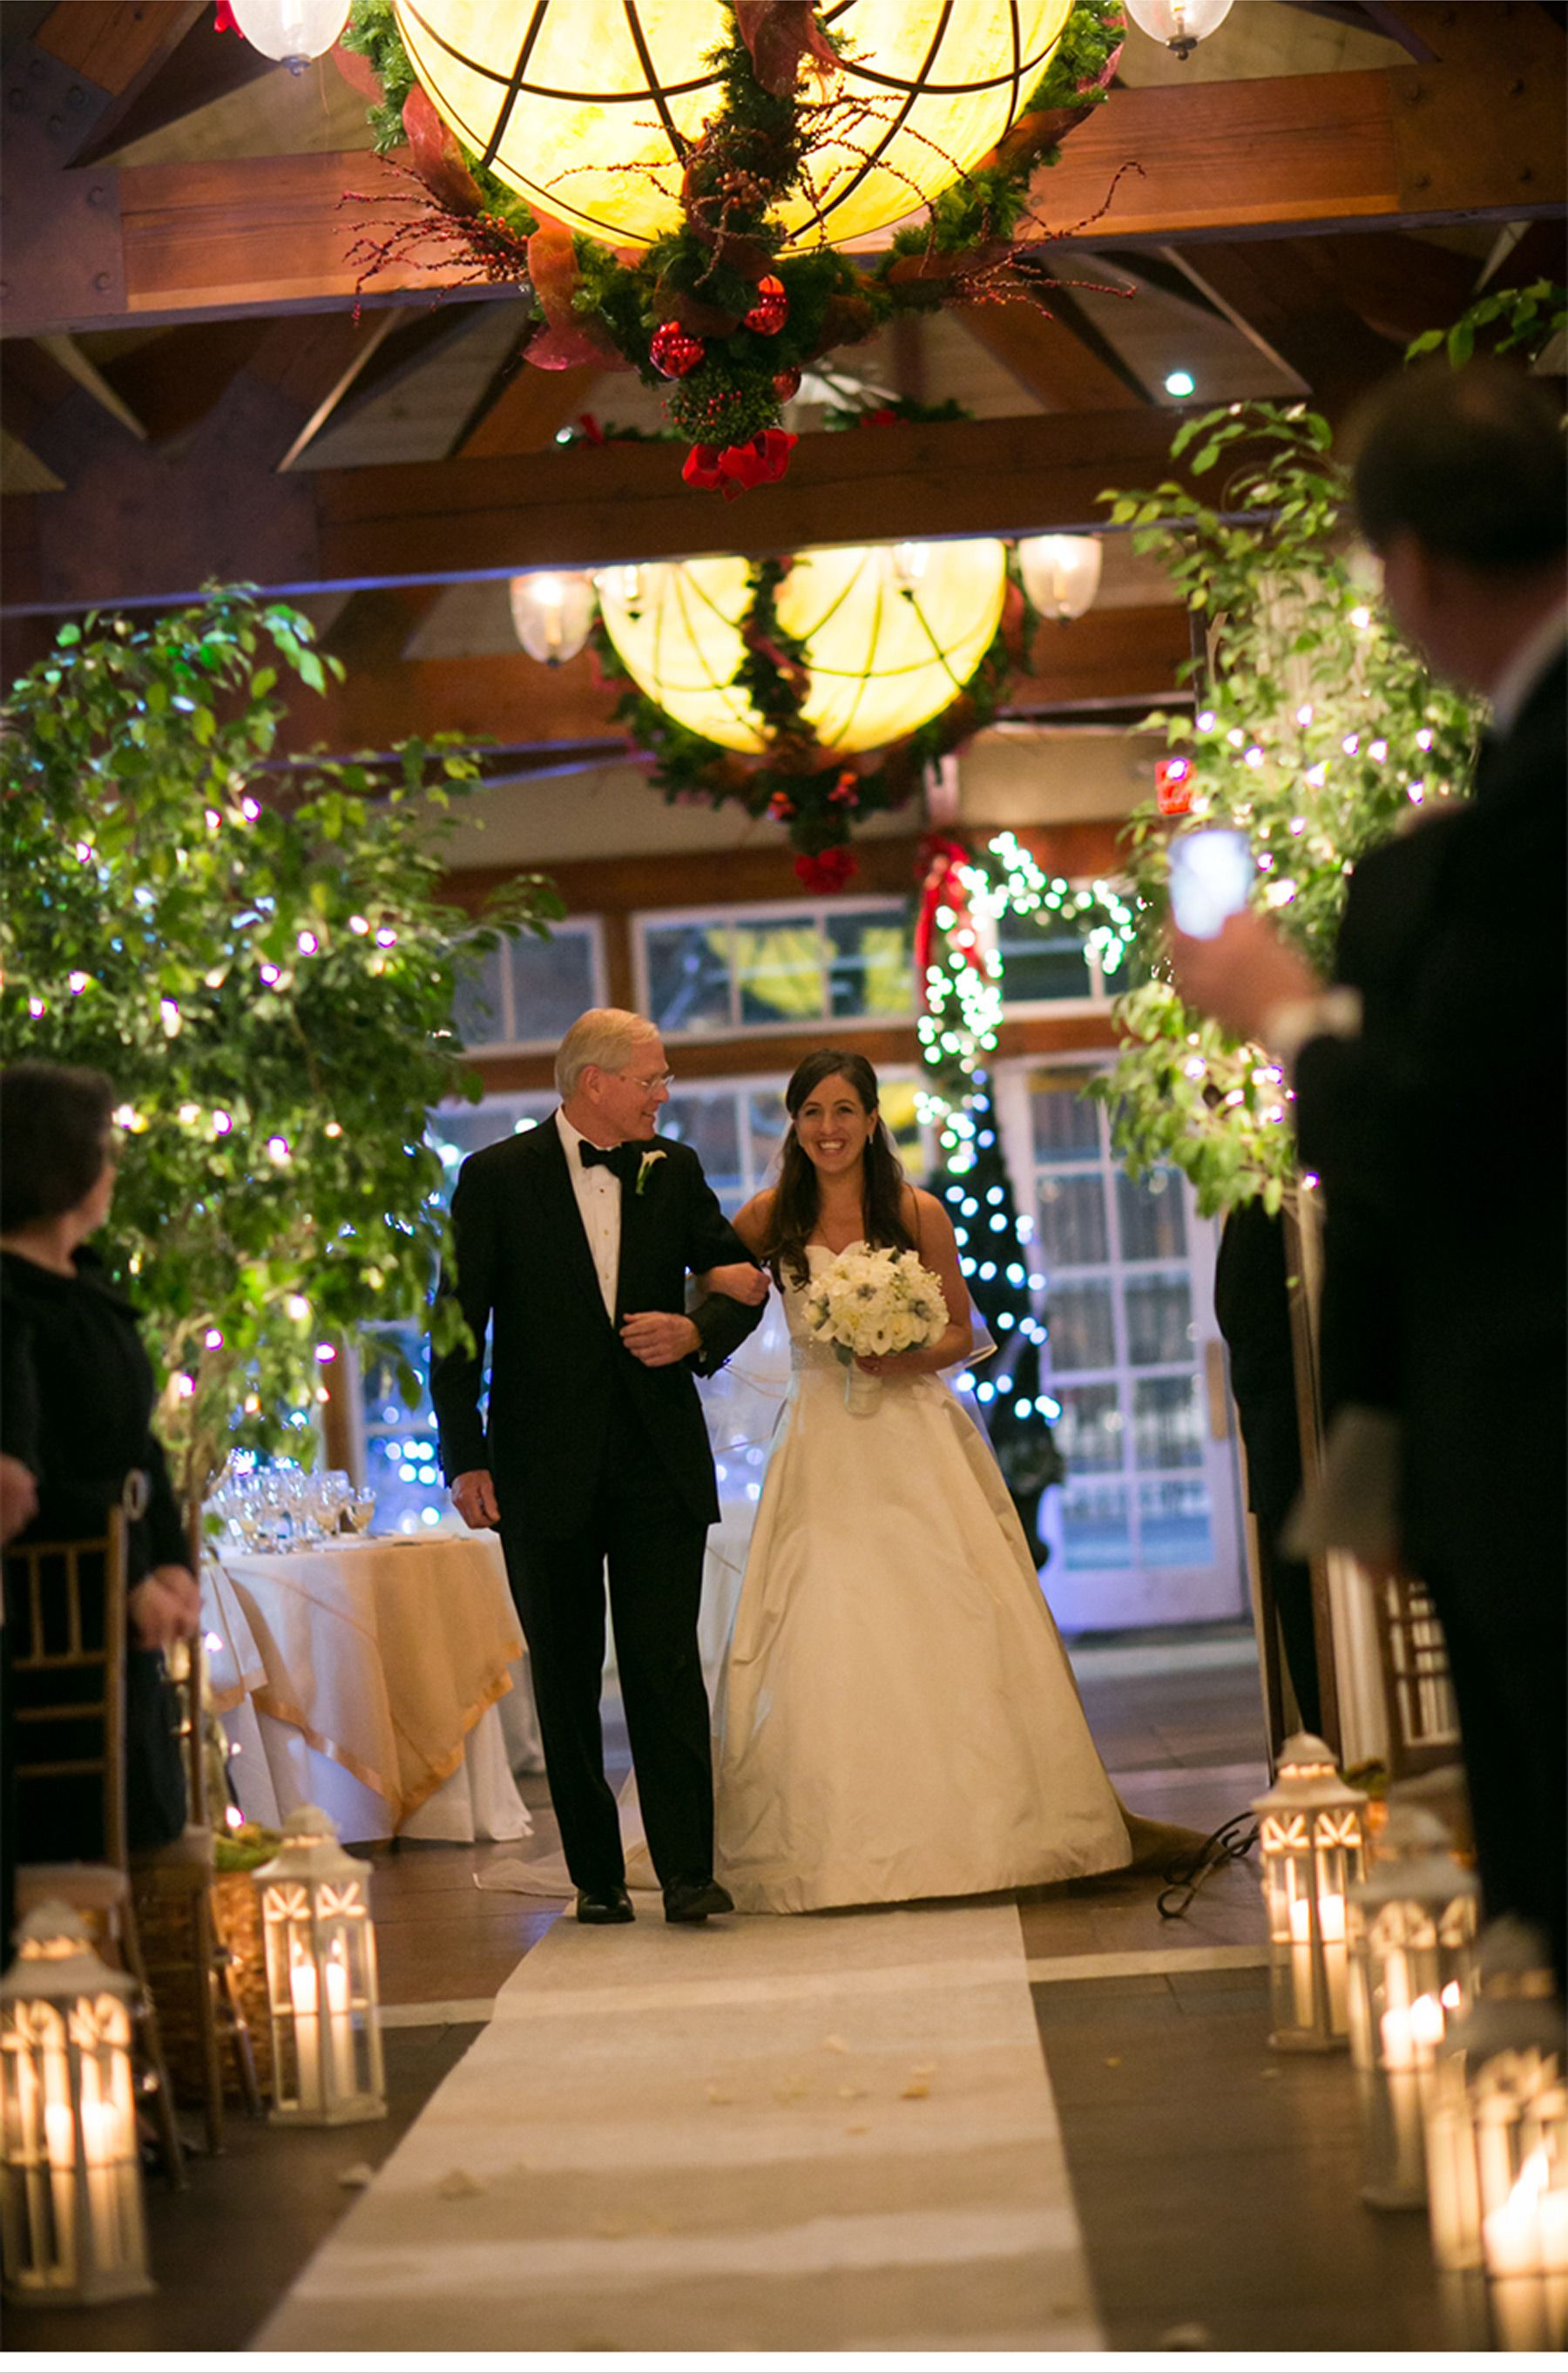 Winter Wedding At The Loeb Boathouse Central Park Be Inspired By Carter Brad S Snowy New York City